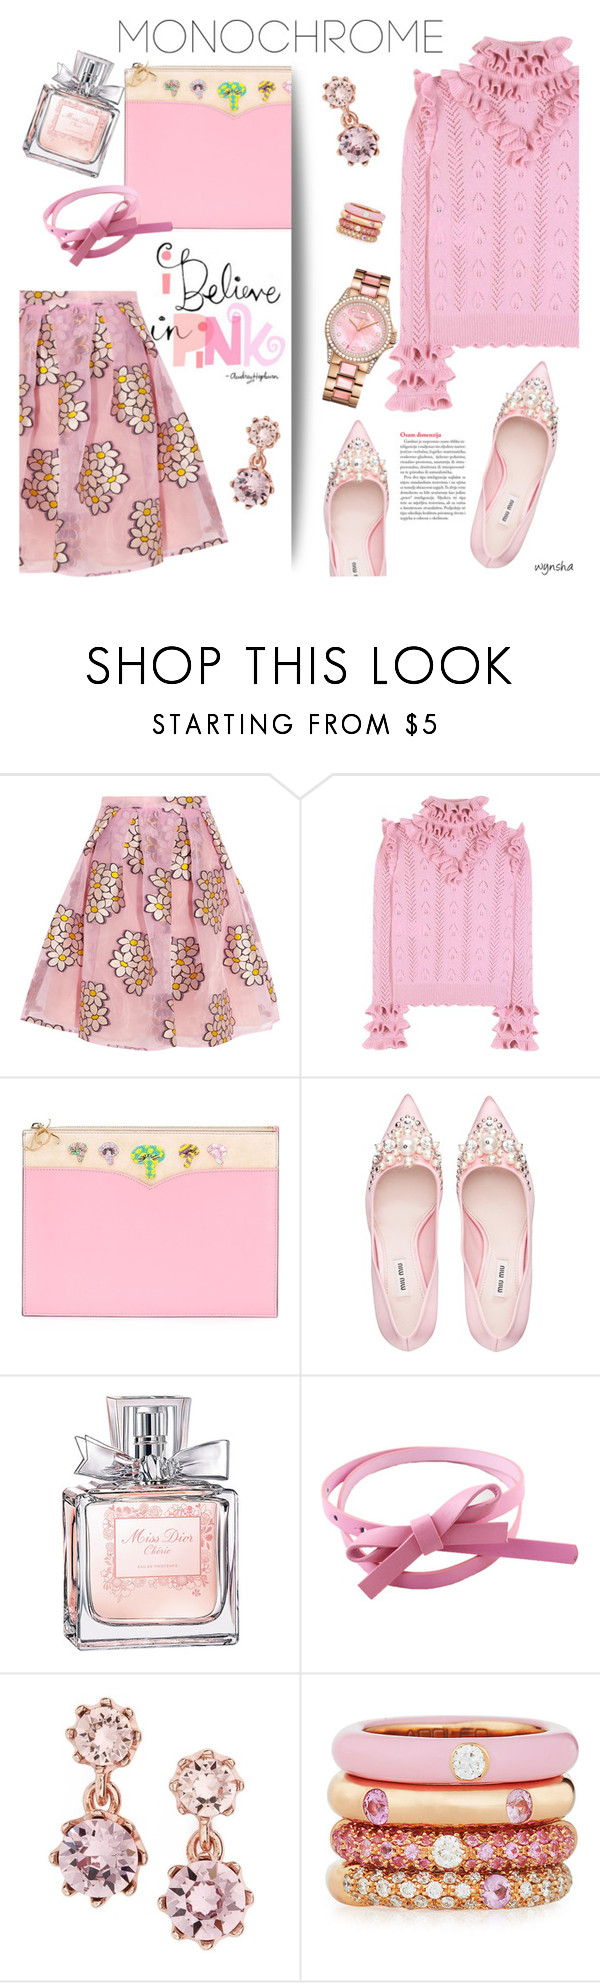 """""""Monochrome PINK #2"""" by wynsha ❤ liked on Polyvore featuring RED Valentino, Gucci, Olympia Le-Tan, Miu Miu, Christian Dior, Ted Baker, Adolfo Courrier and Juicy Couture"""